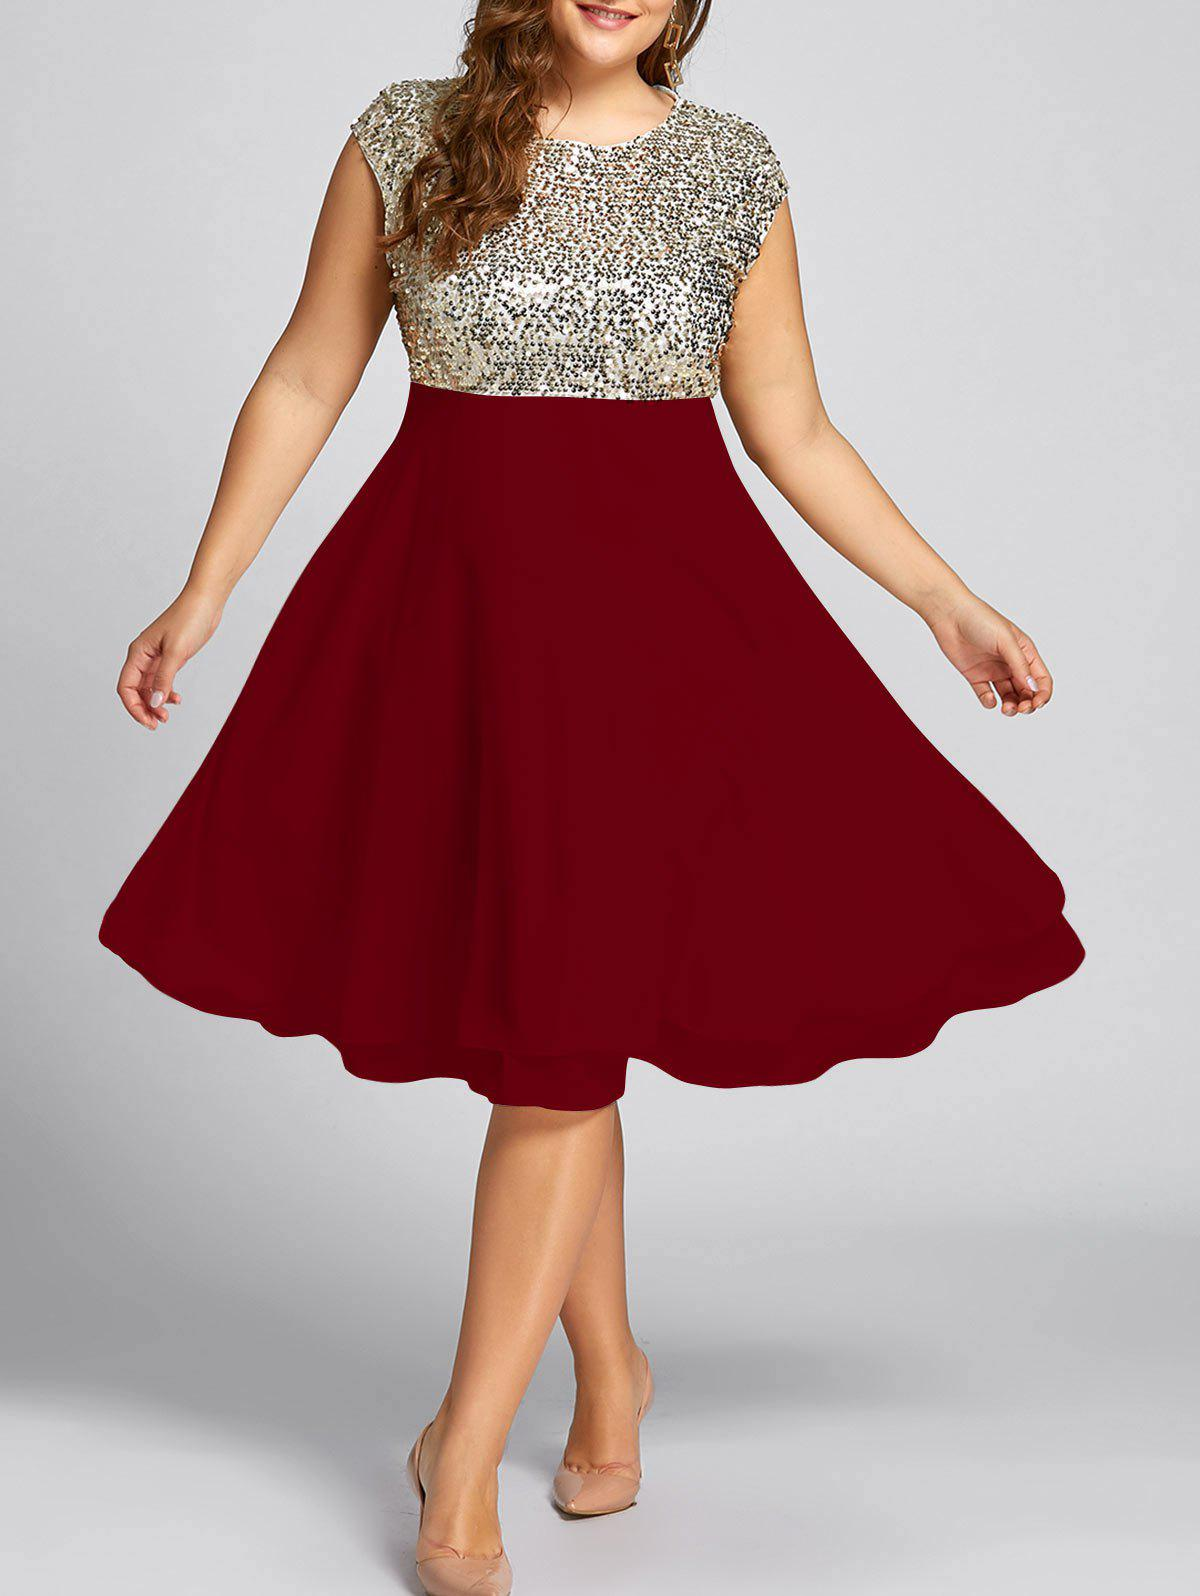 bef5e0e2135 48% OFF  Flounce Plus Size Sparkly Sequin Cocktail Dress